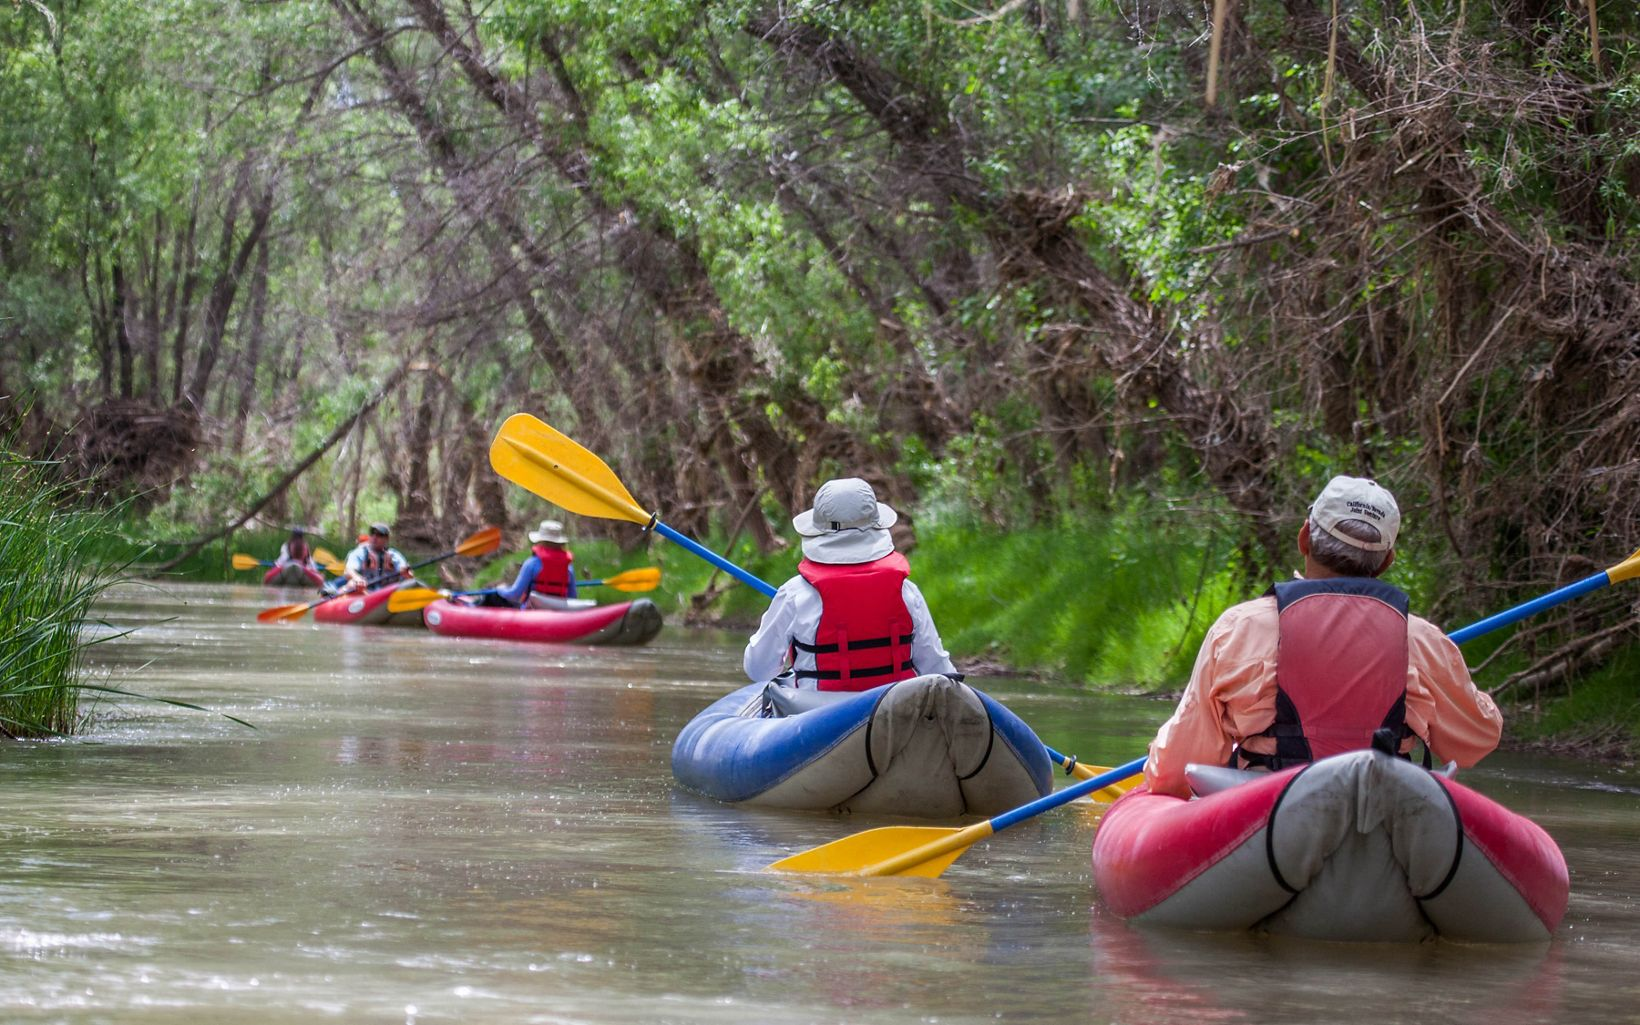 Four kayakers paddle away down the muddy waters of the Verde River.